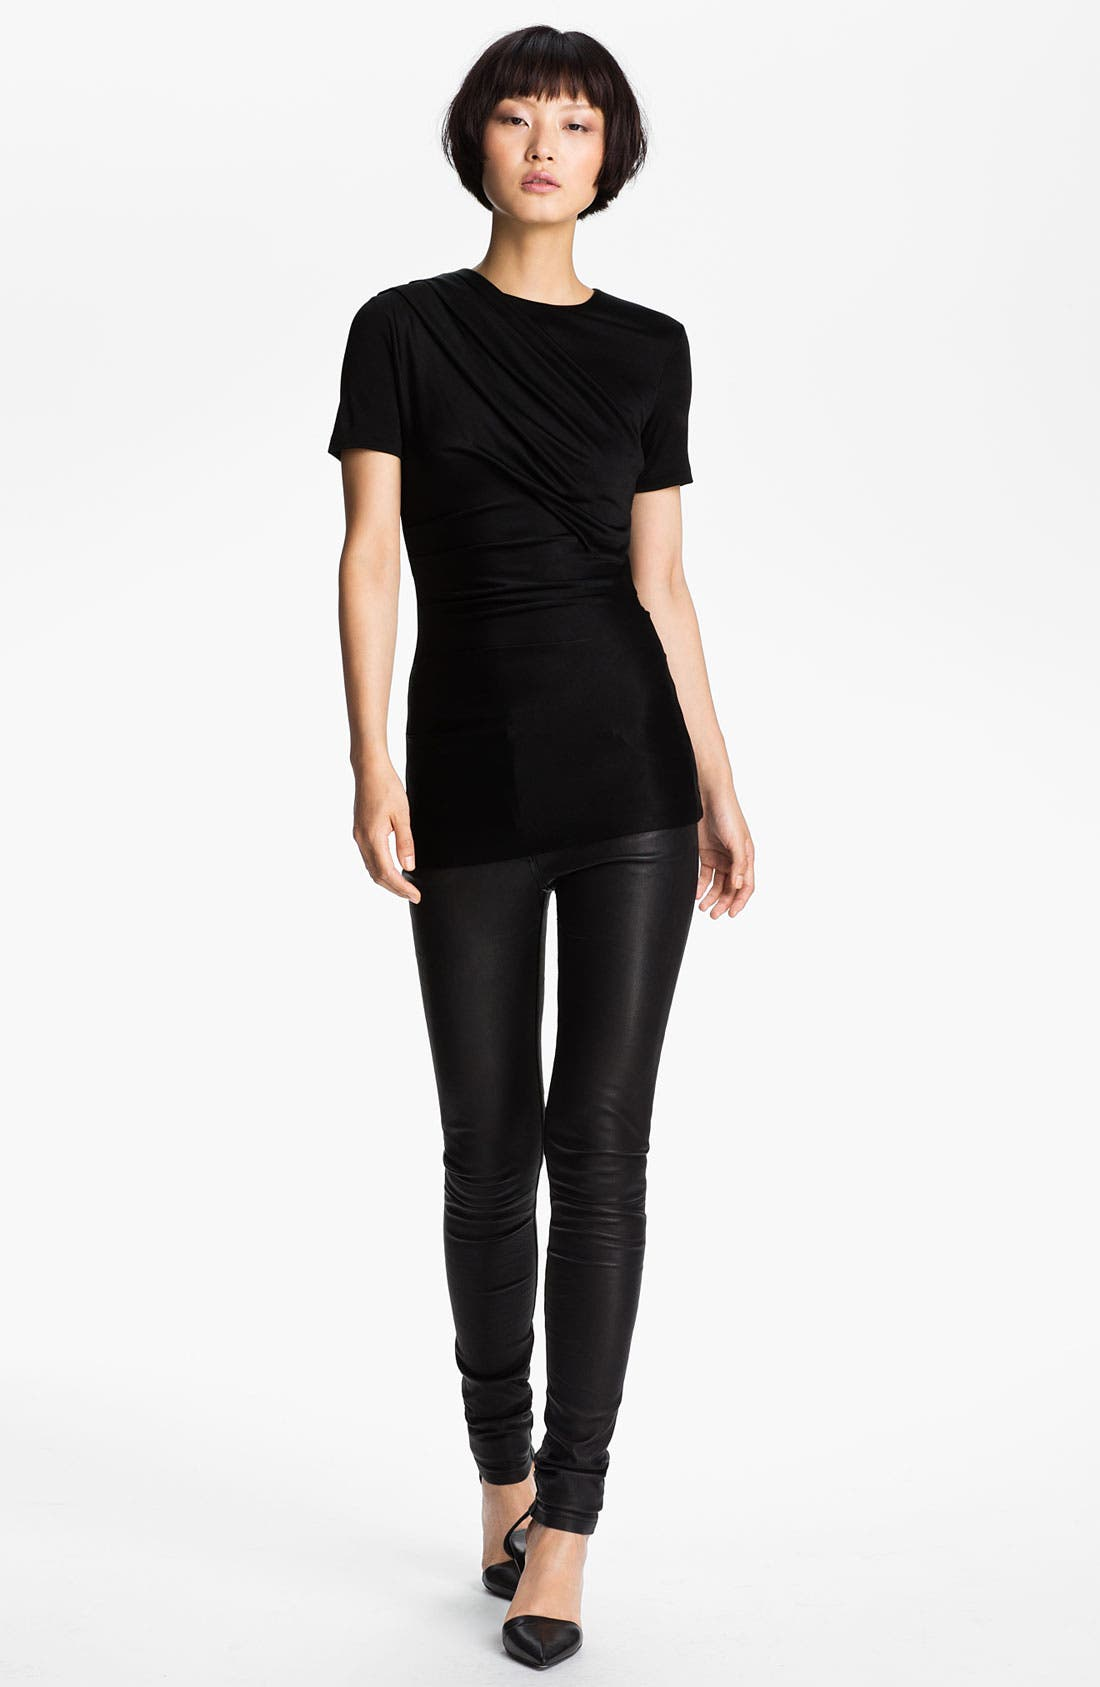 Alternate Image 1 Selected - T by Alexander Wang Piqué Double Knit Tee